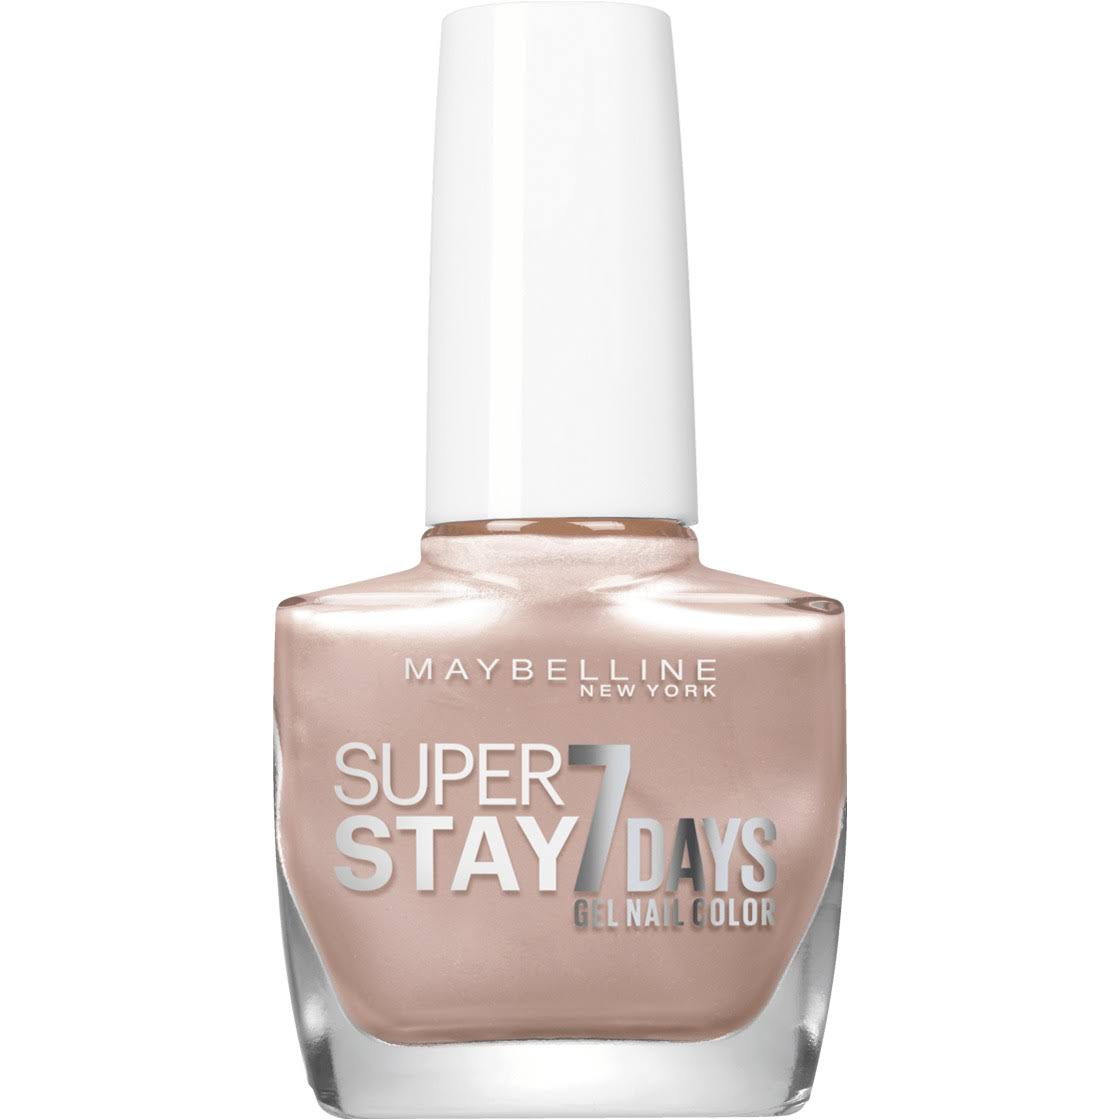 Maybelline Superstay 7 Days City Nudes Nail Color - 892 Dusted Pearl, 49g